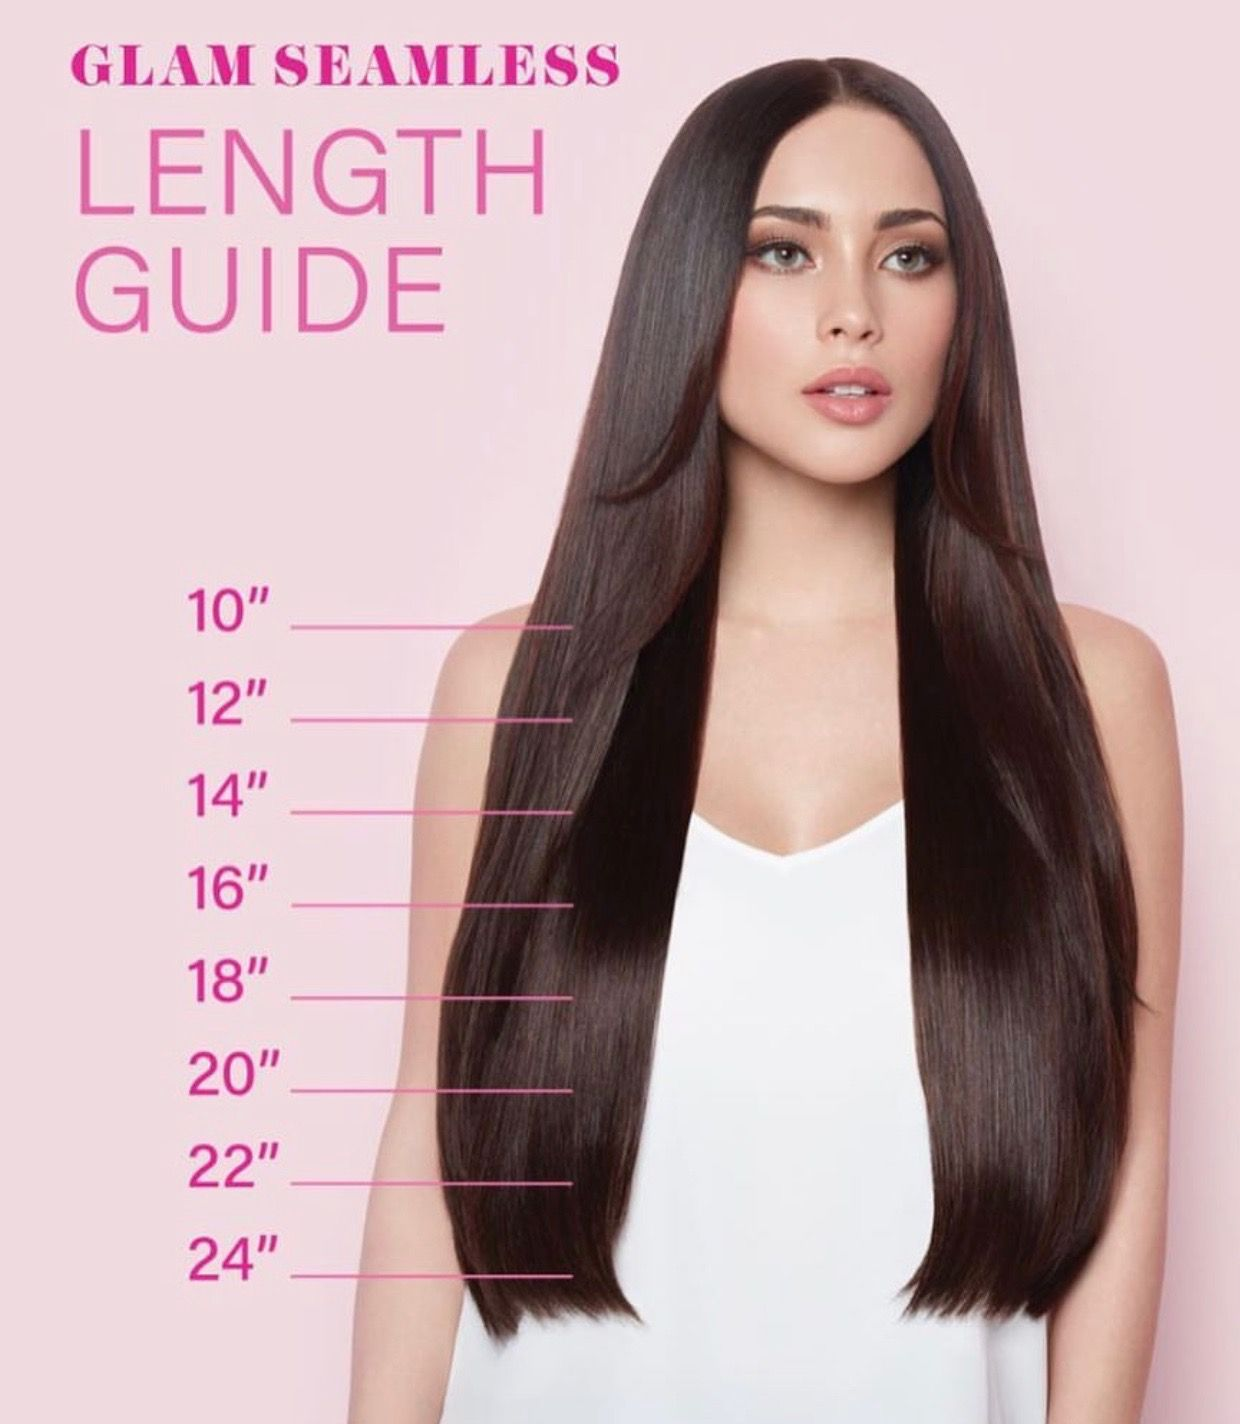 Glam Seamless Hair Extension Length Guide 2017 Hair Extension